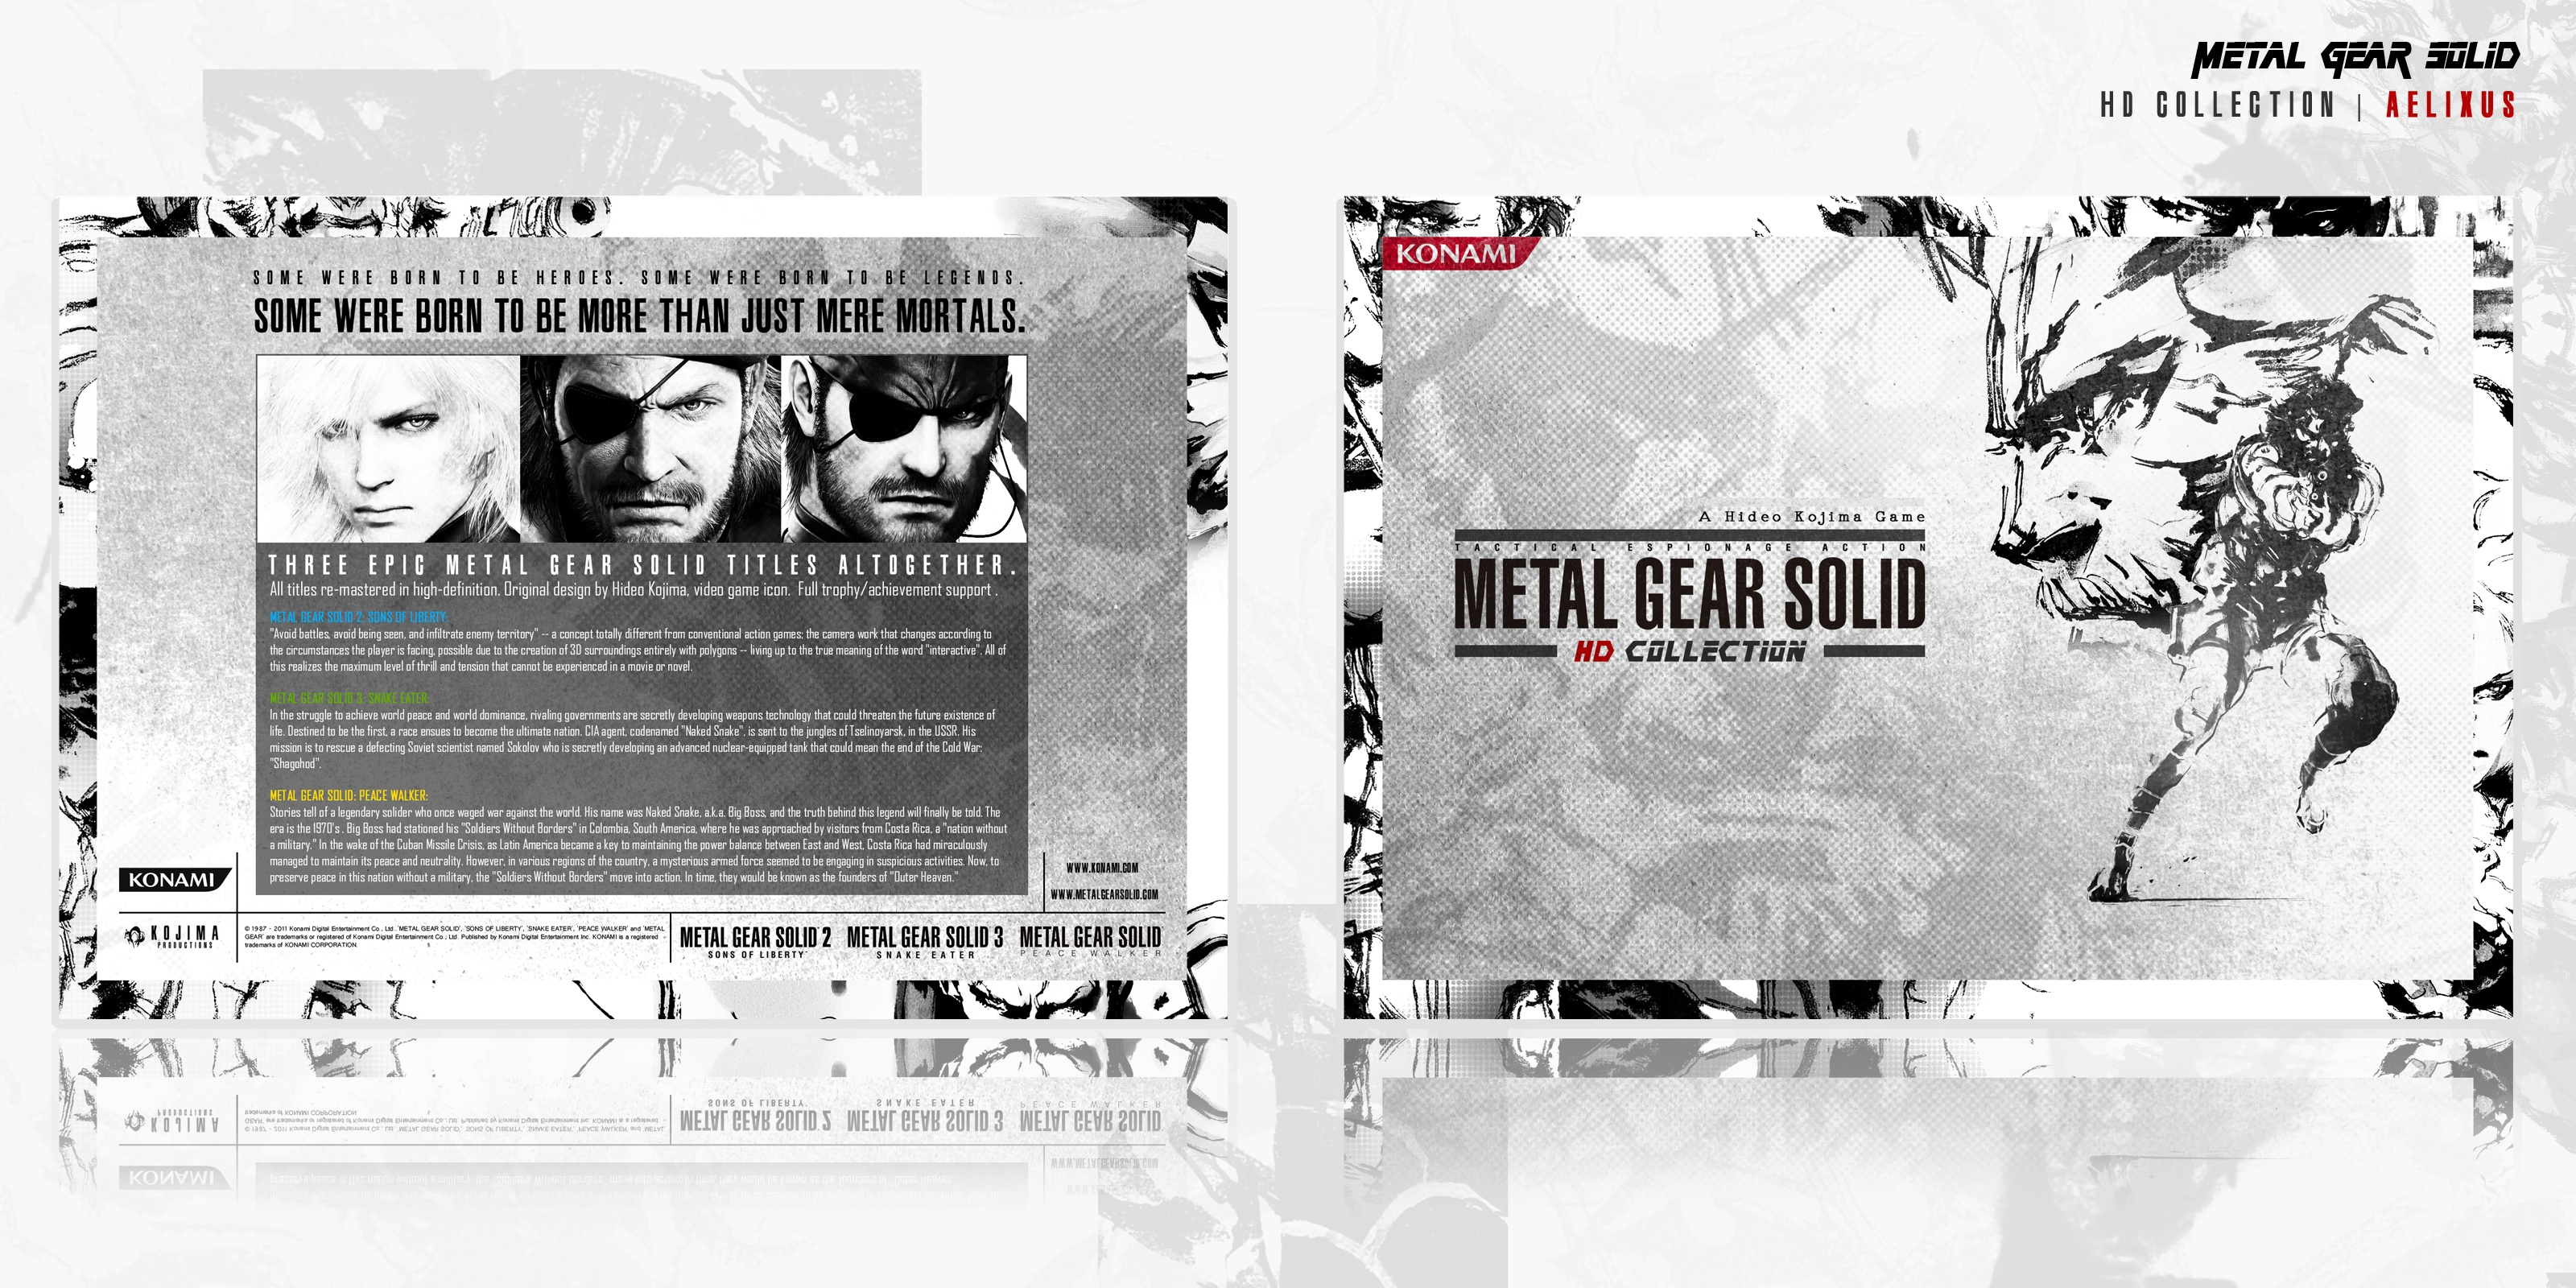 Metal Gear Solid: HD Collection box cover